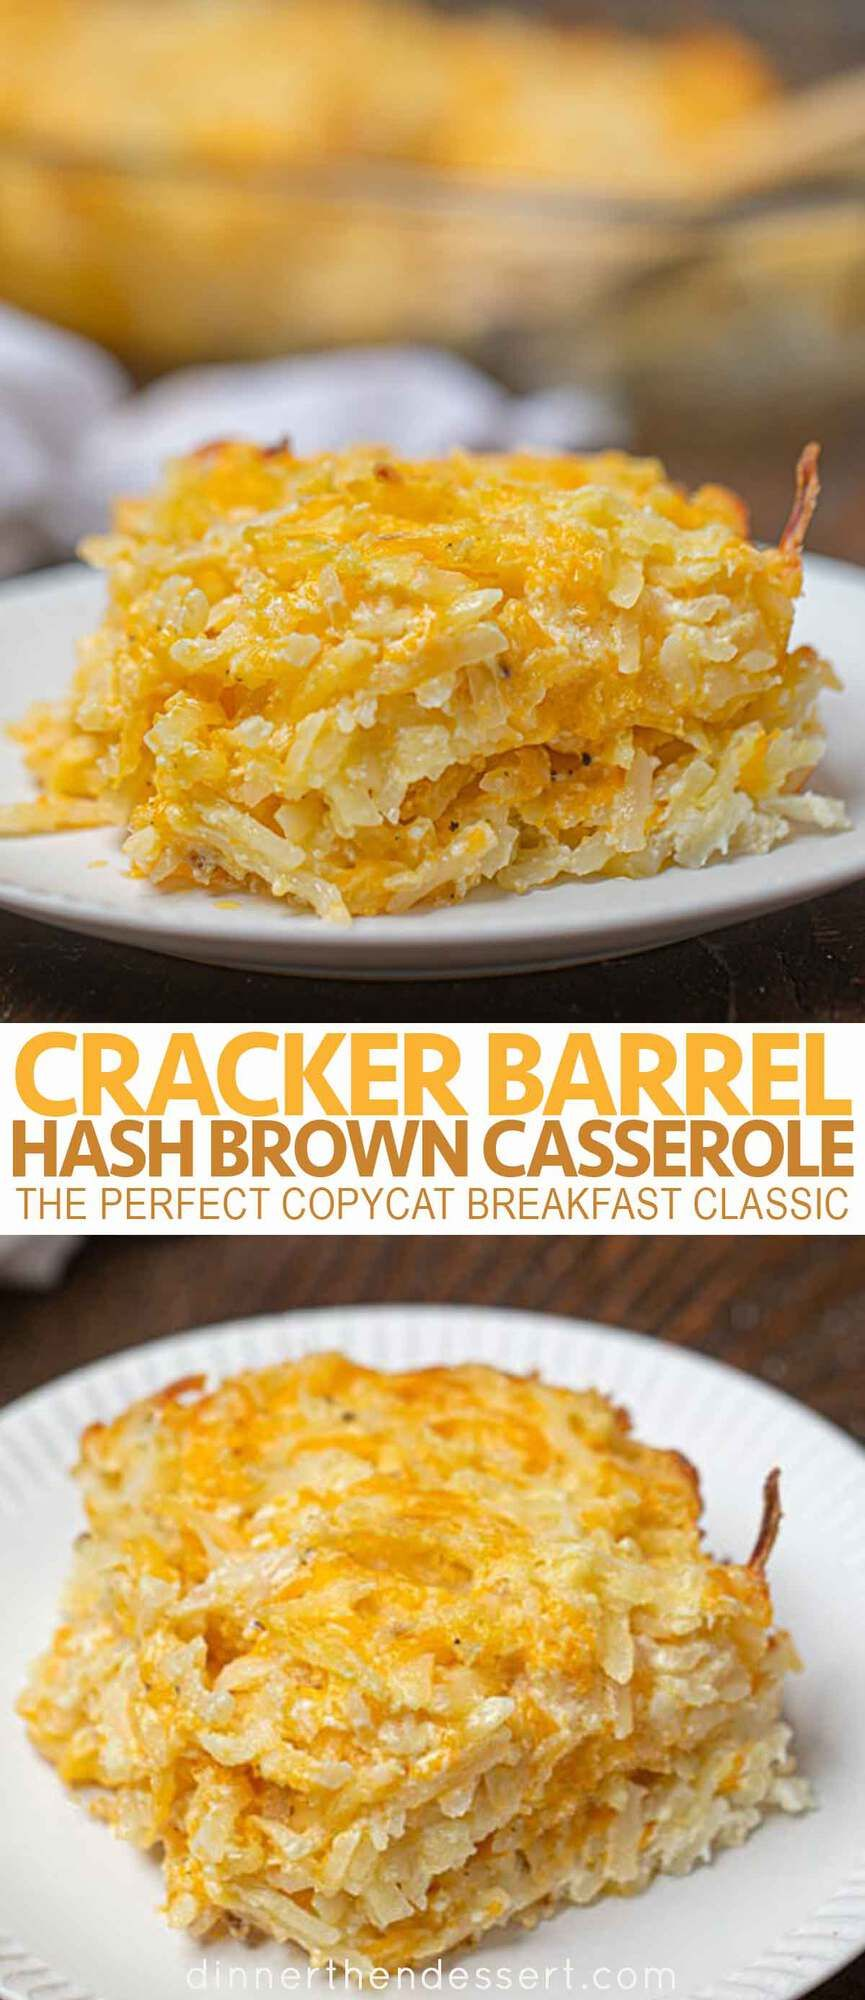 Cracker Barrel Hash Brown Casserole Is The Perfect Copycat Breakfast Classic With S Hash Brown Casserole Hashbrown Recipes